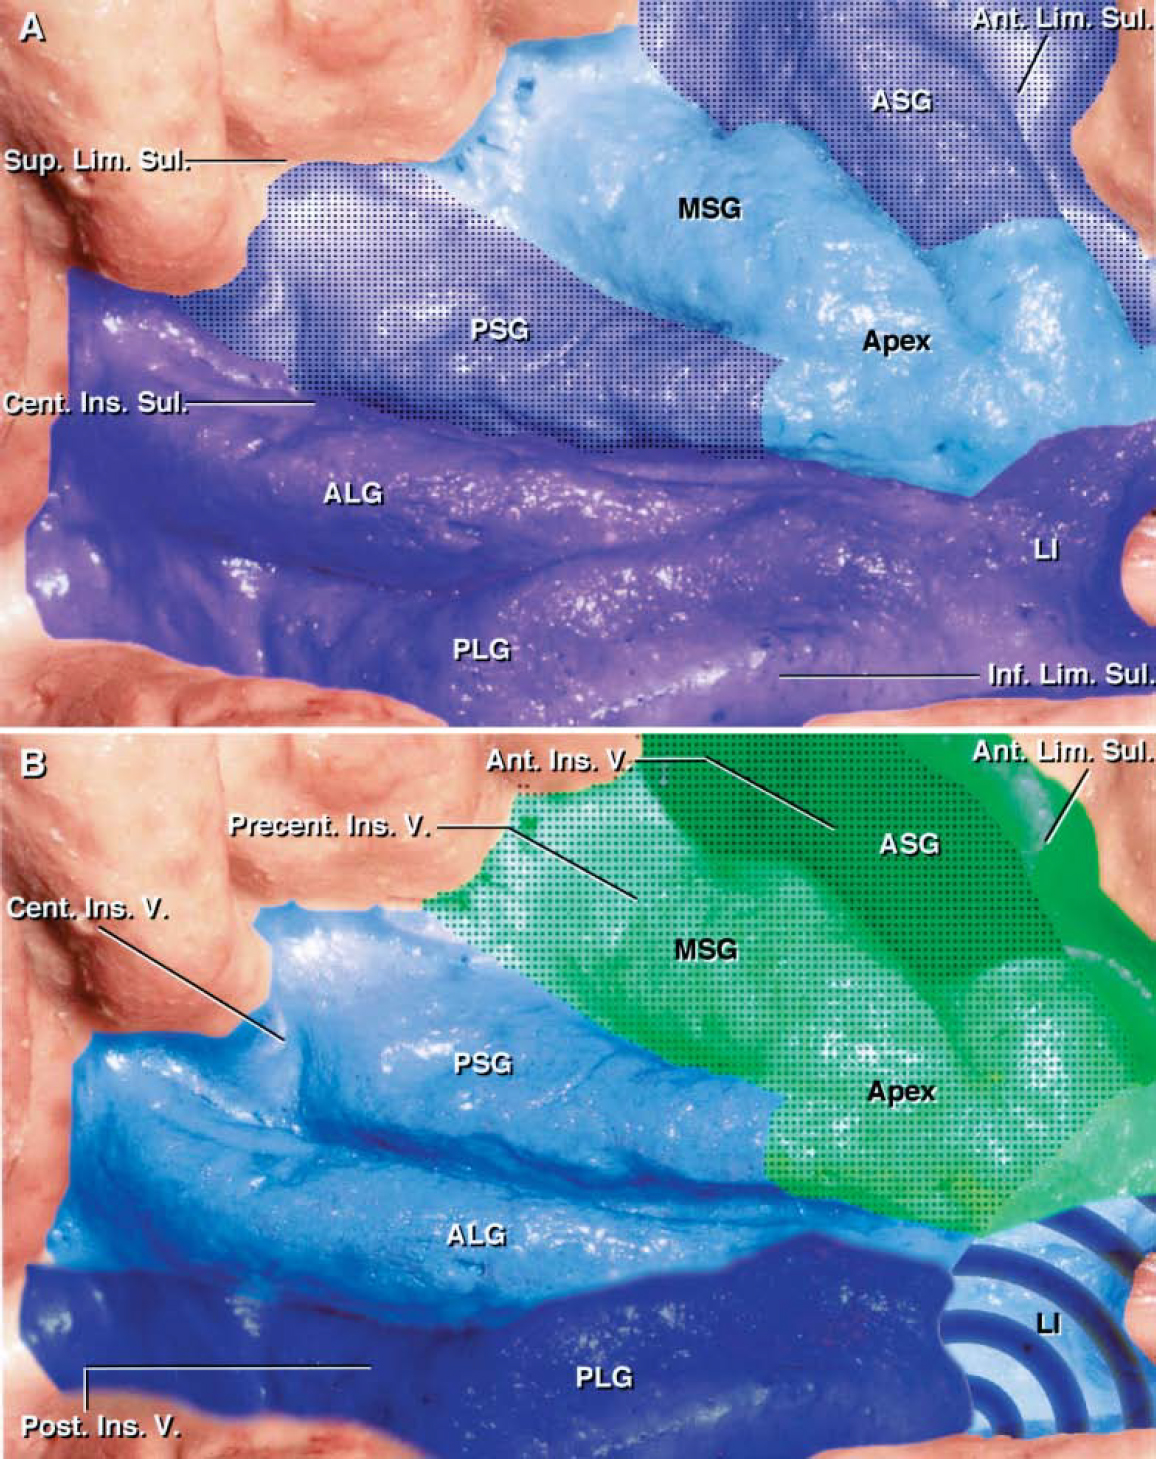 FIG. 9. A: Diagram of the insular areas drained by the superficial and deep venous systems in 43 hemispheres. See Table 7 for a listing of the insular areas drained by the superficial and/or deep venous systems. The territory drained by the deep venous system is shaded purple, whereas that drained by the superficial venous system is light blue. The limen area, inferior limiting sulcus, long gyri, and central insular sulcus are drained by the deep MCV (purple area). The SSV drained the middle short gyrus and insular apex more commonly than any other insular area (light blue area). The transitional zone, which is usually drained by both the superficial and deep venous systems, included the anterior and posterior short gyri and the anterior limiting sulcus (stippled area). These transitional areas emptied three to eight times more frequently into the deep MCV than the SSV. B: Diagram of areas drained by insular veins. See Table 8 for a listing of the insular areas drained by the four insular veins. The territory drained by each insular vein is shaded a different color: anterior insular vein (dark green), precentral insular vein (light green), central insular vein (light blue), and posterior insular vein (dark blue). The areas having significant anastomotic connections with the SSV are stippled. The anterior insular vein drained the anterior limiting sulcus and the anterior short gyrus (dark green area). Although the anterior short gyrus was drained by the anterior insular vein in the majority of hemispheres, the frontosylvian veins contributed to drainage in almost half of the cases (stippled area). The precentral insular vein drained the middle short gyrus and insular apex and displayed more anastomoses with the SSV than any other insular vein. The frontosylvian veins contributed to drainage of the middle short gyrus and insular apex in more than 80% of the hemispheres (stippled area). The central insular vein drained the posterior short and anterior long gyri and the